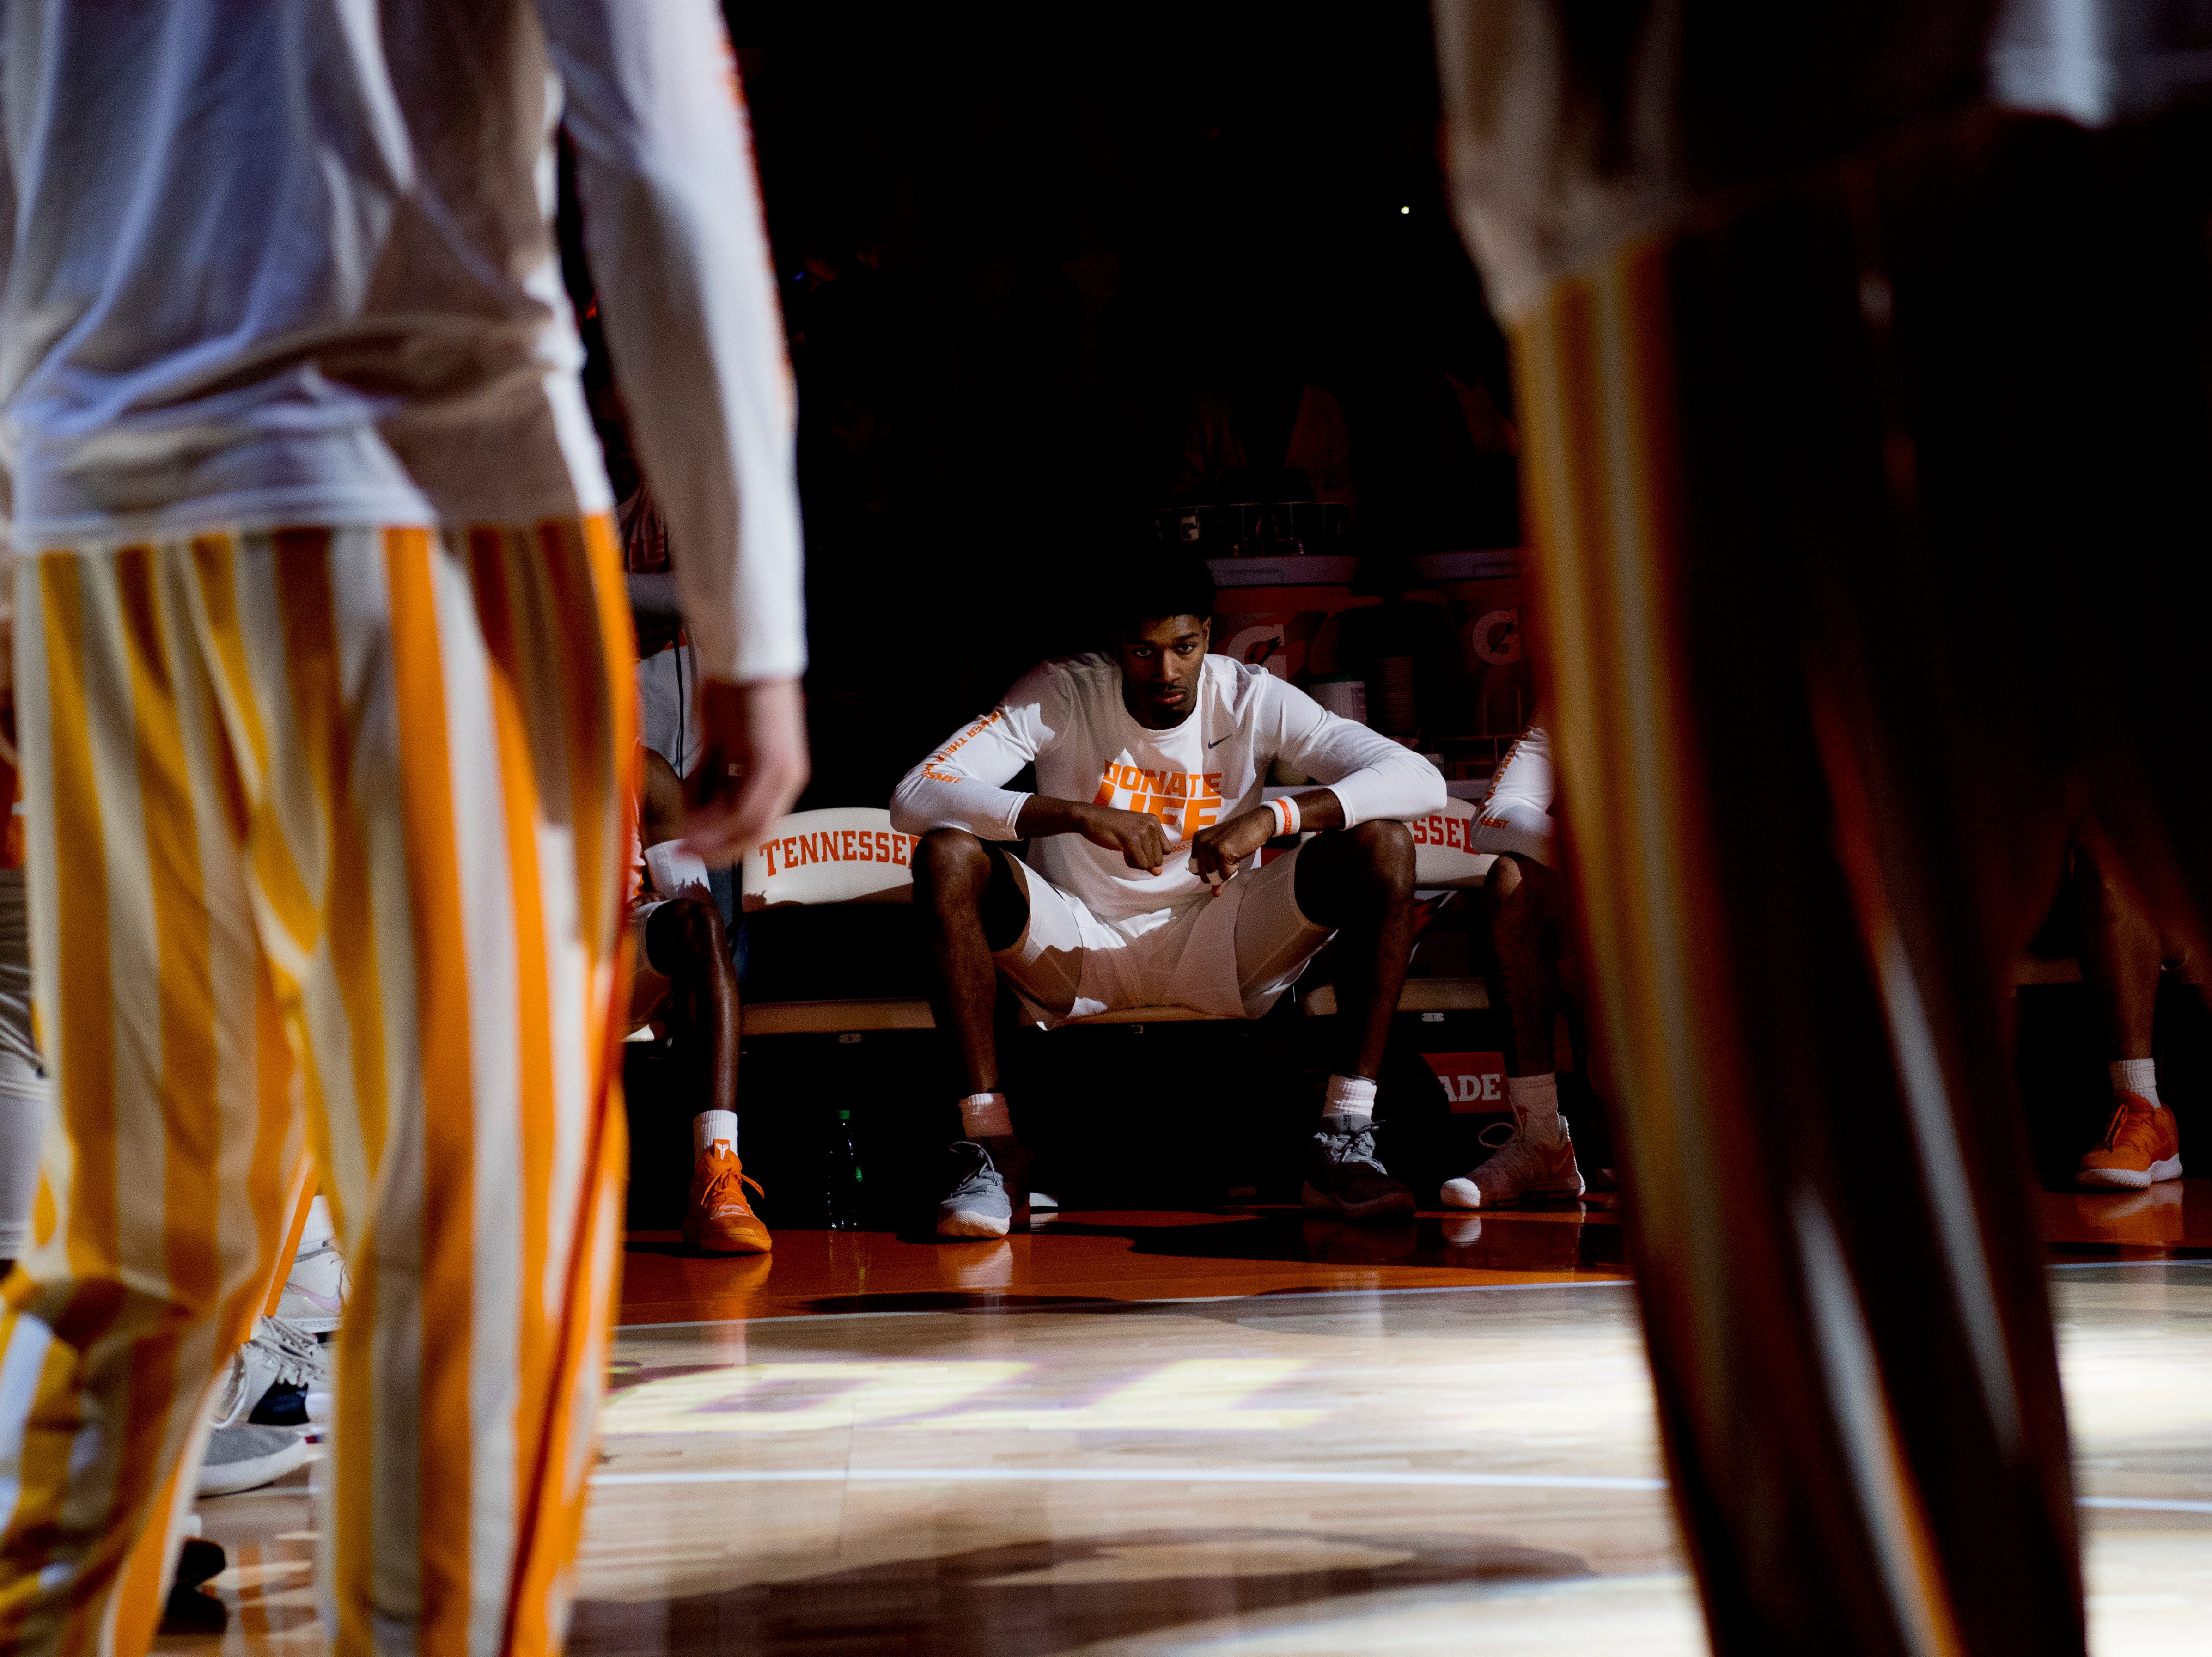 Tennessee forward Kyle Alexander (11) waits to be announced during a game between Tennessee and Vanderbilt at Thompson-Boling Arena in Knoxville, Tennessee on Tuesday, February 19, 2019.